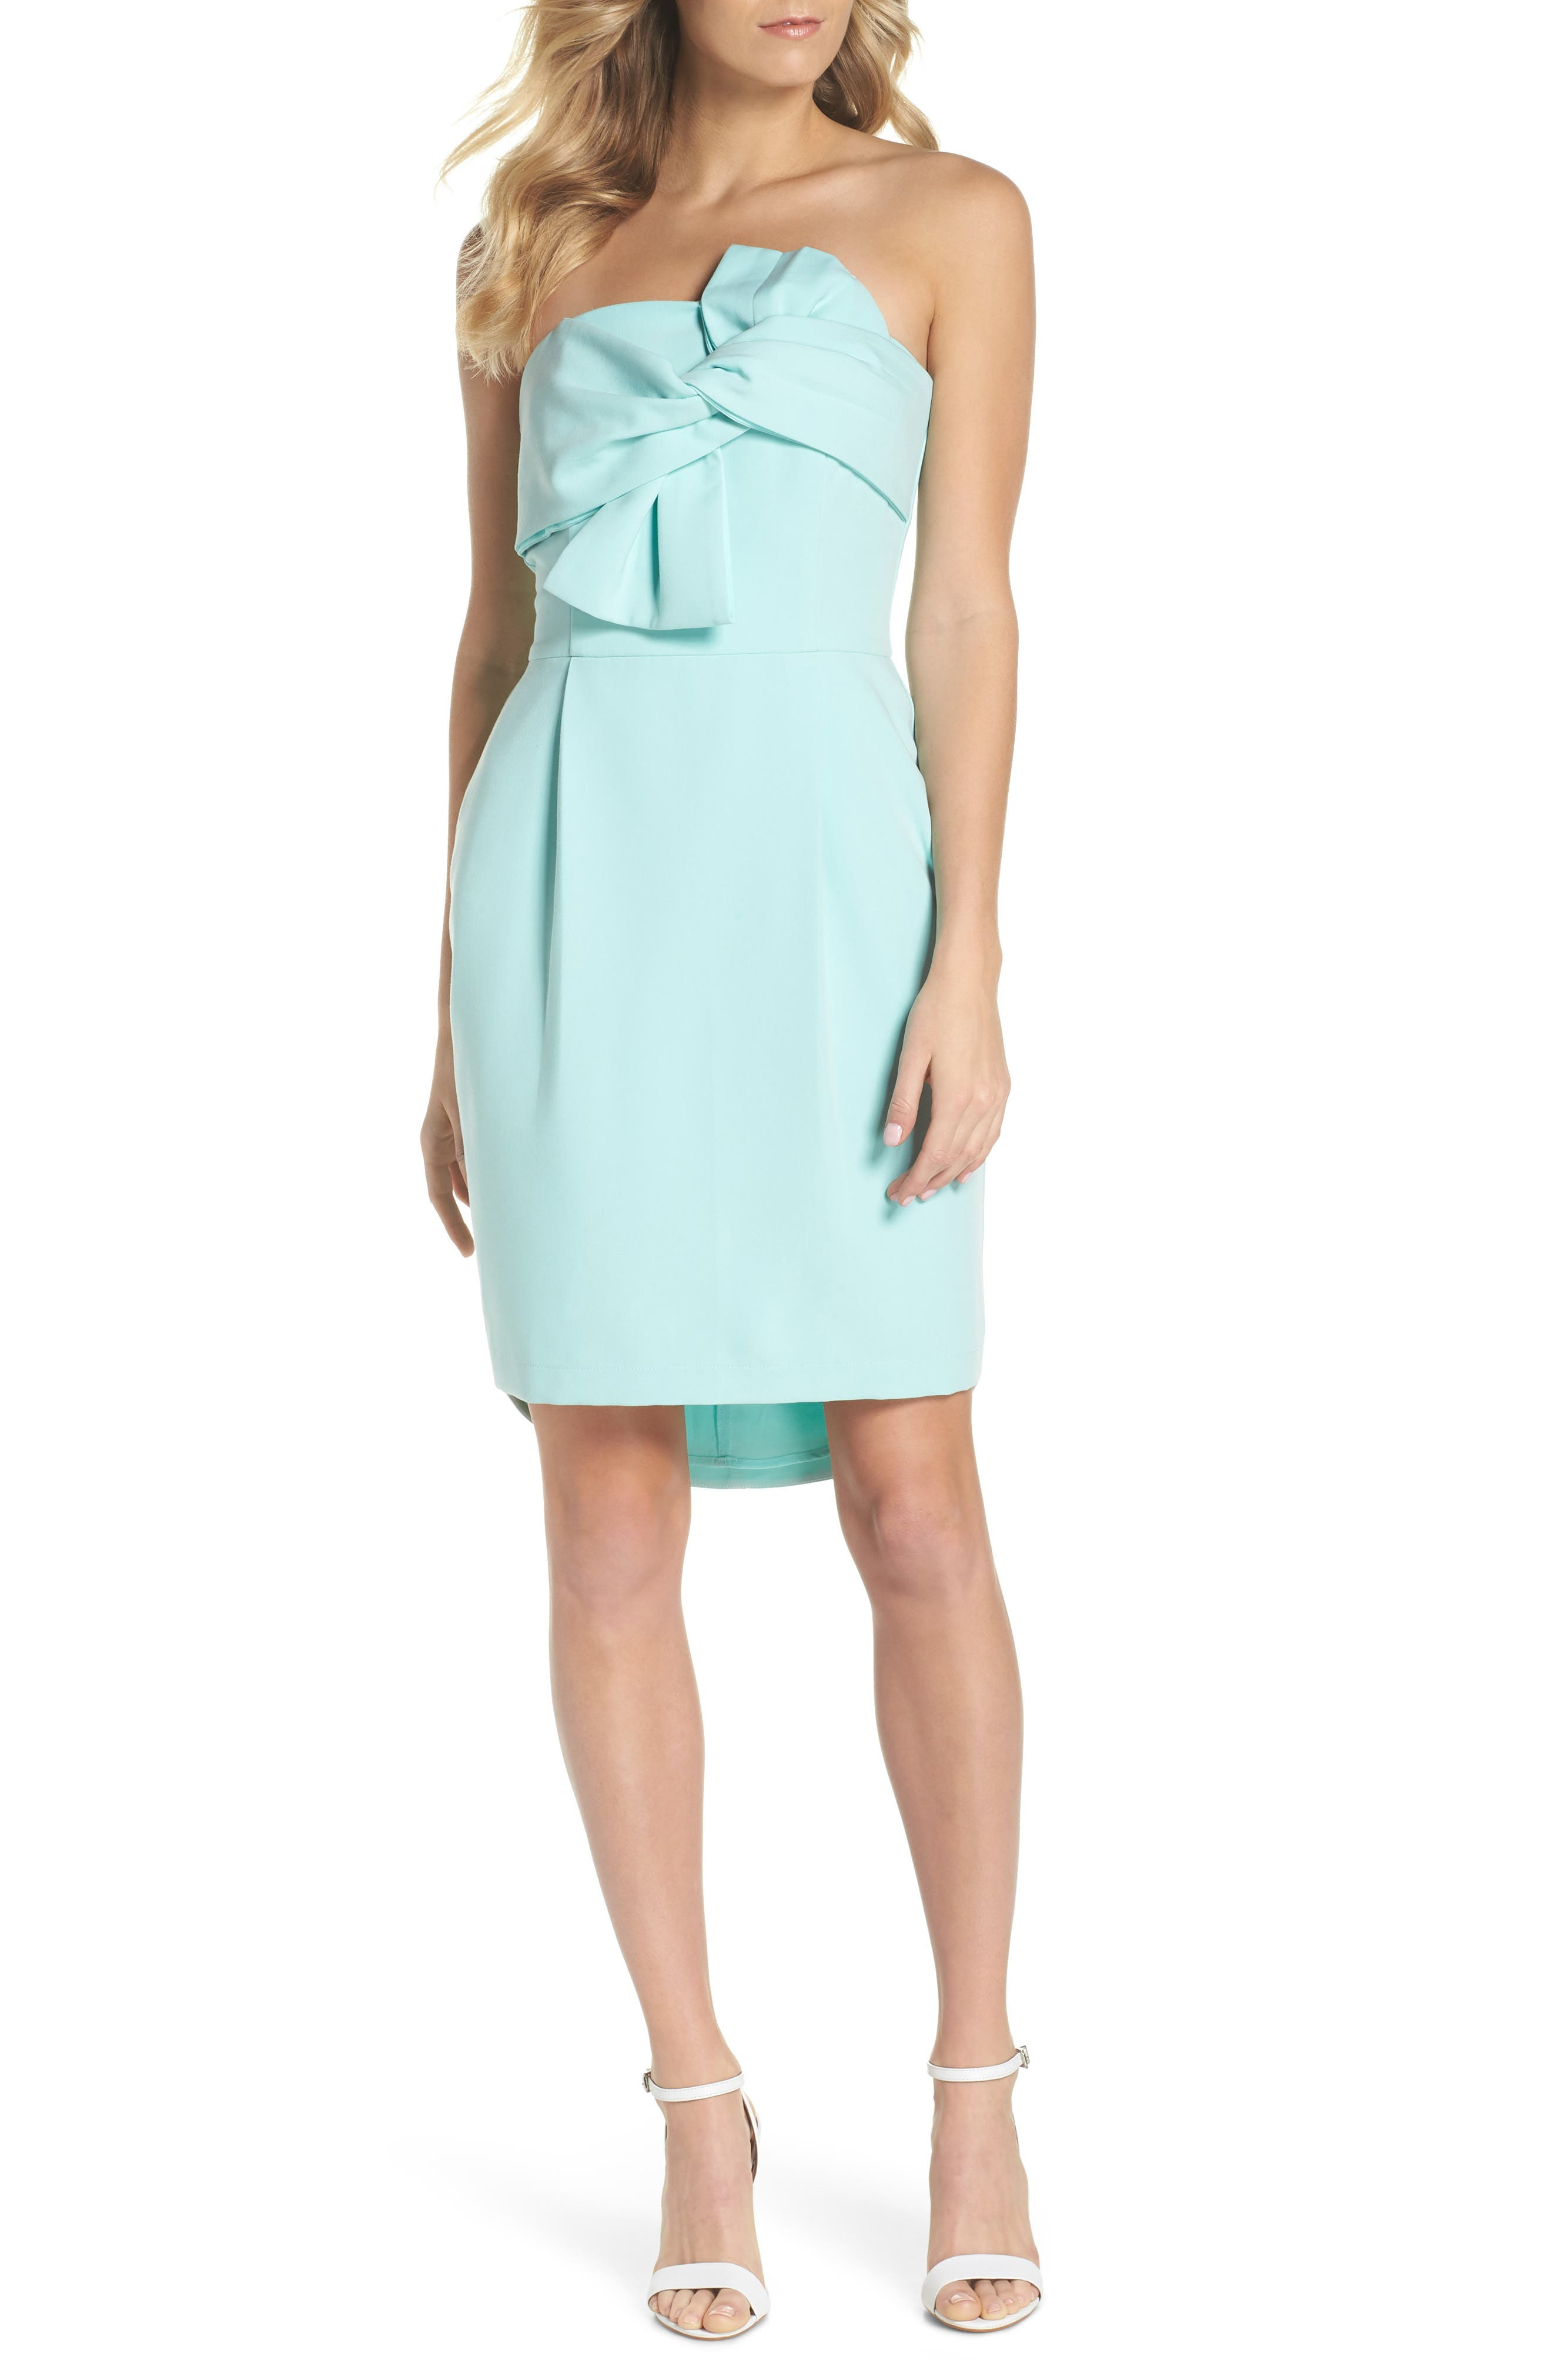 Alternate Image 1 Selected - Adelyn Rae Krissy Twist Front Strapless Dress